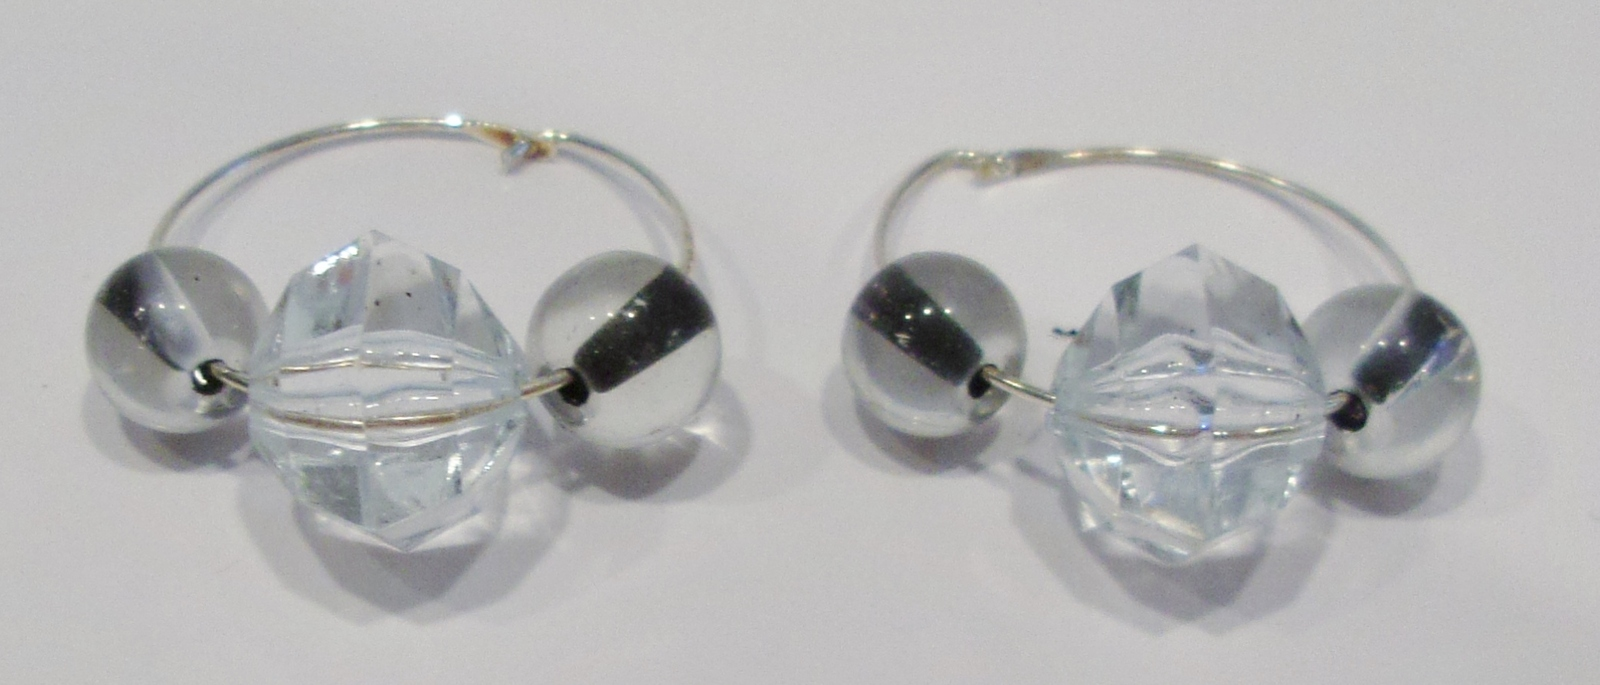 handmade silver hoop earrings with clear glass beads with black centers